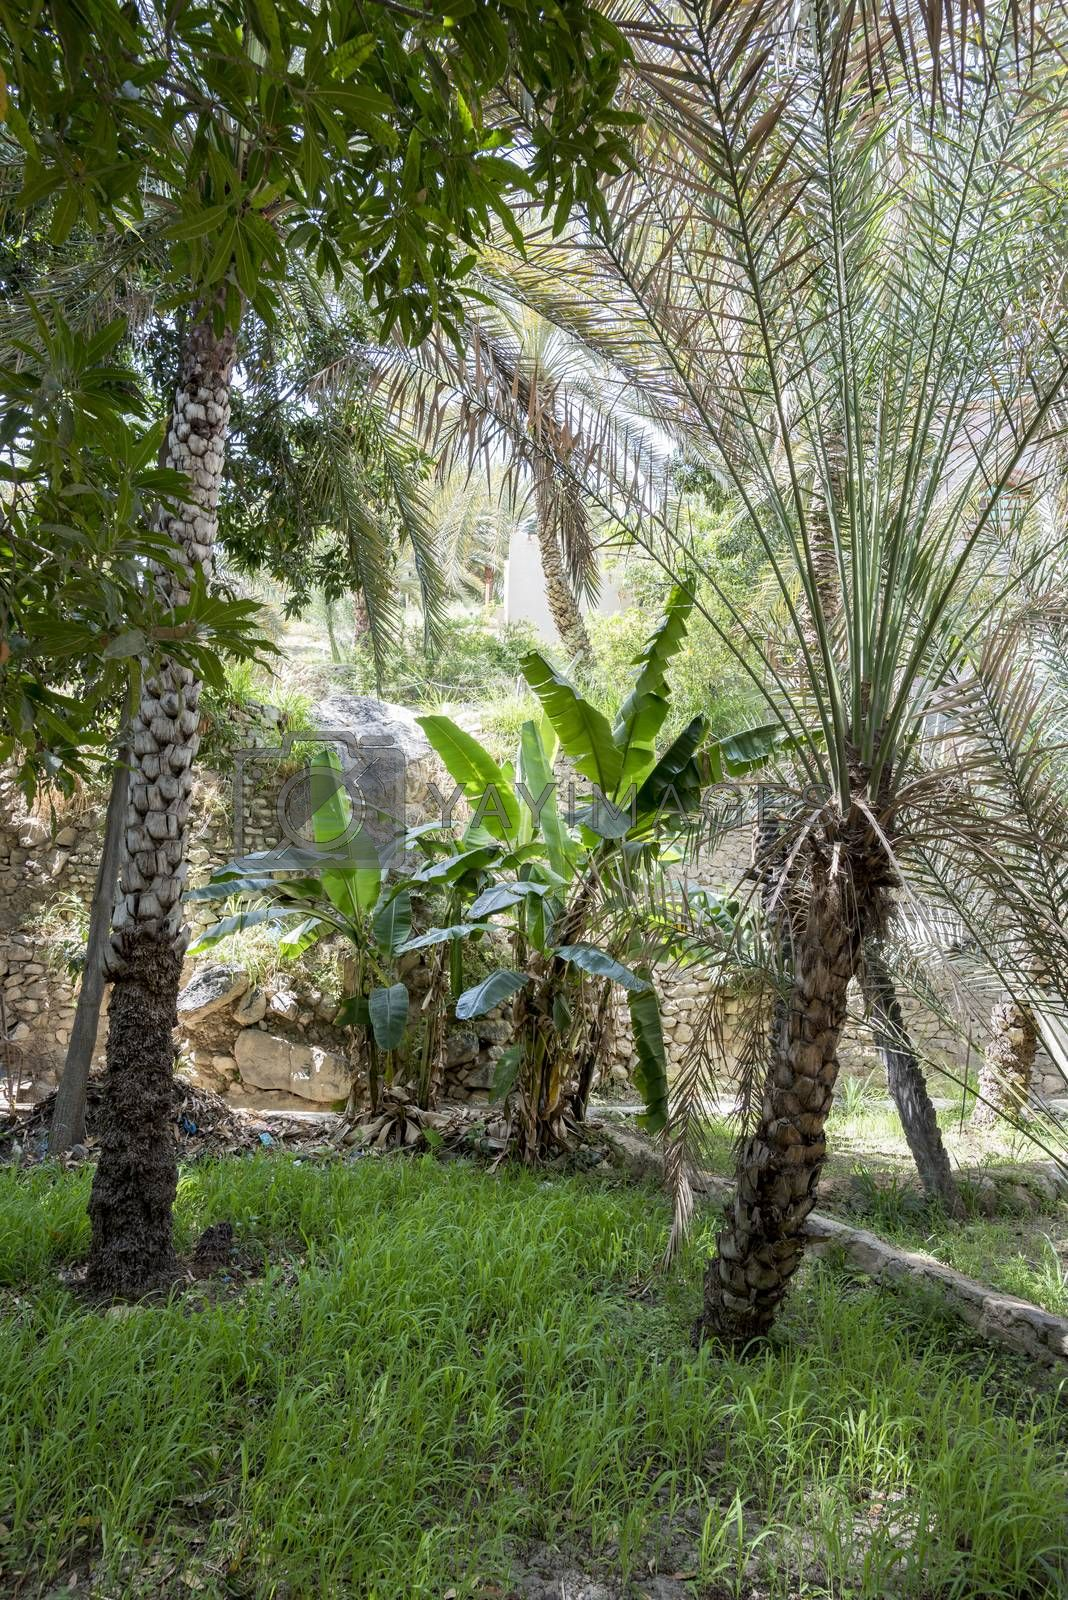 Palm grove and typical arabian garden in Wadi Bani Khalid, Sultanate of Oman. This kind of garden are very common in the region and they are using the water of the river passing just on the side or bringing from small canals up to the location they want.